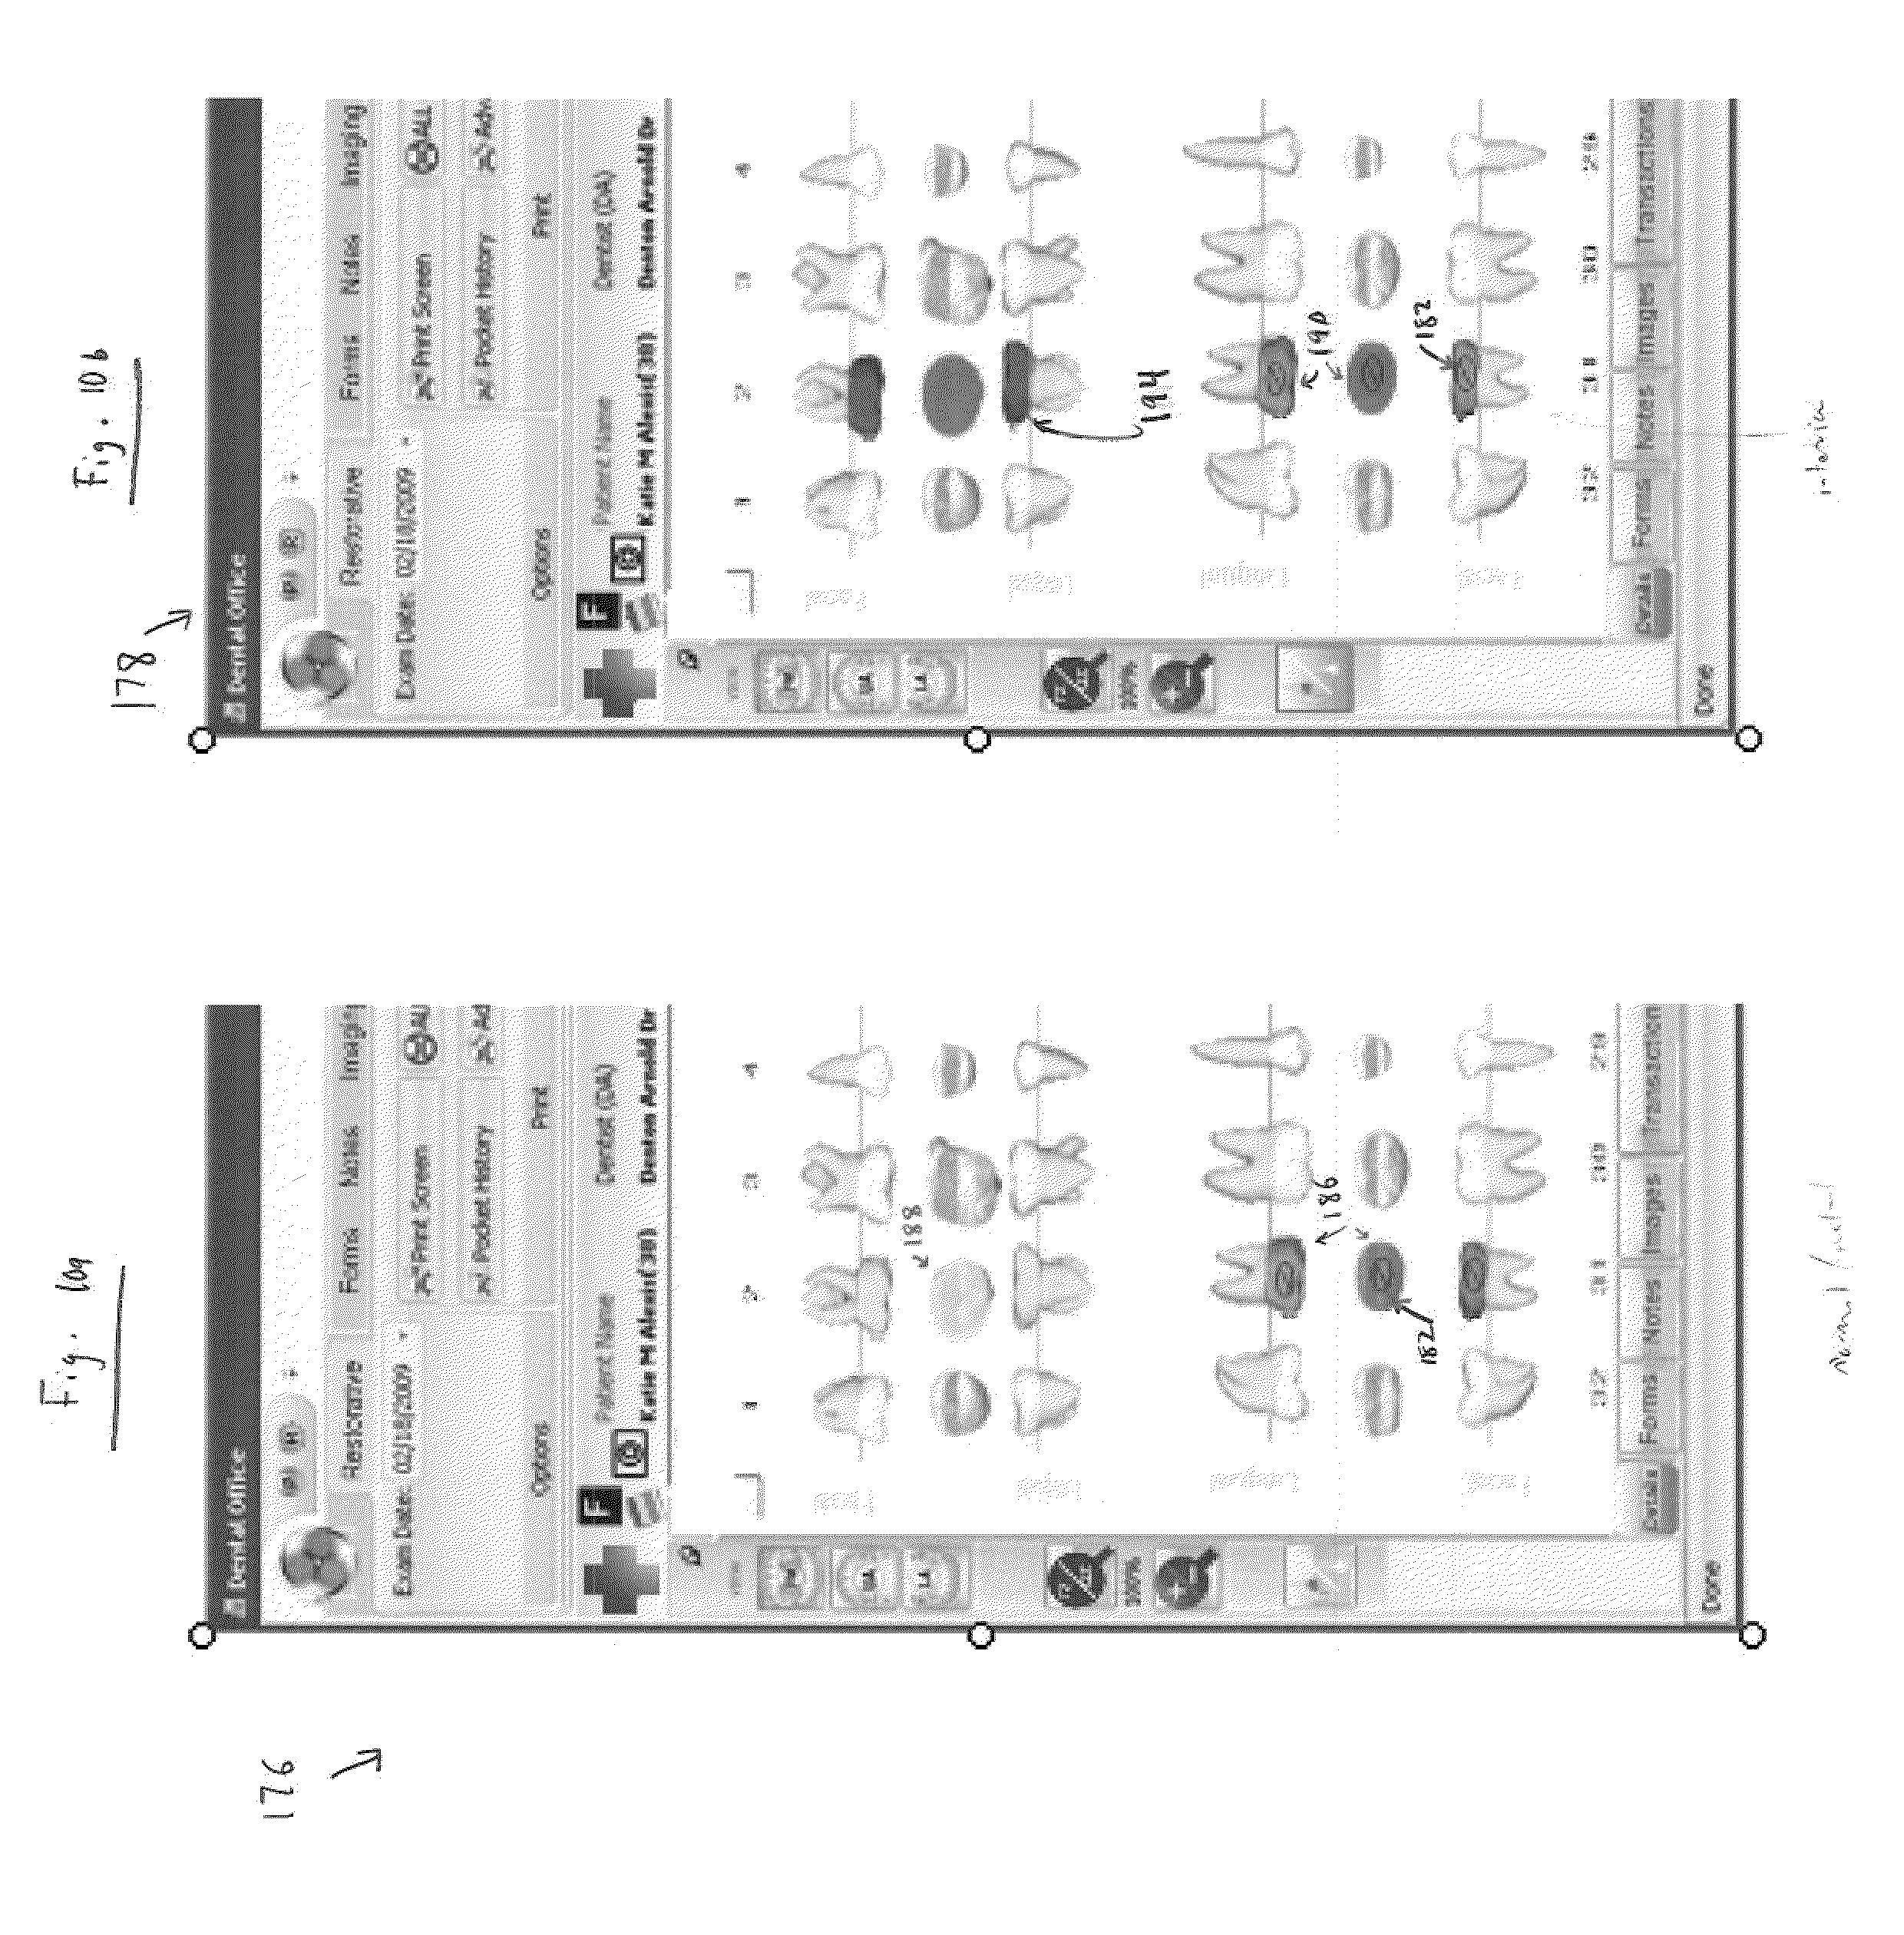 Lovely periodontal chart template contemporary entry level patent us20100121658 dental charting system google patents biocorpaavc Gallery